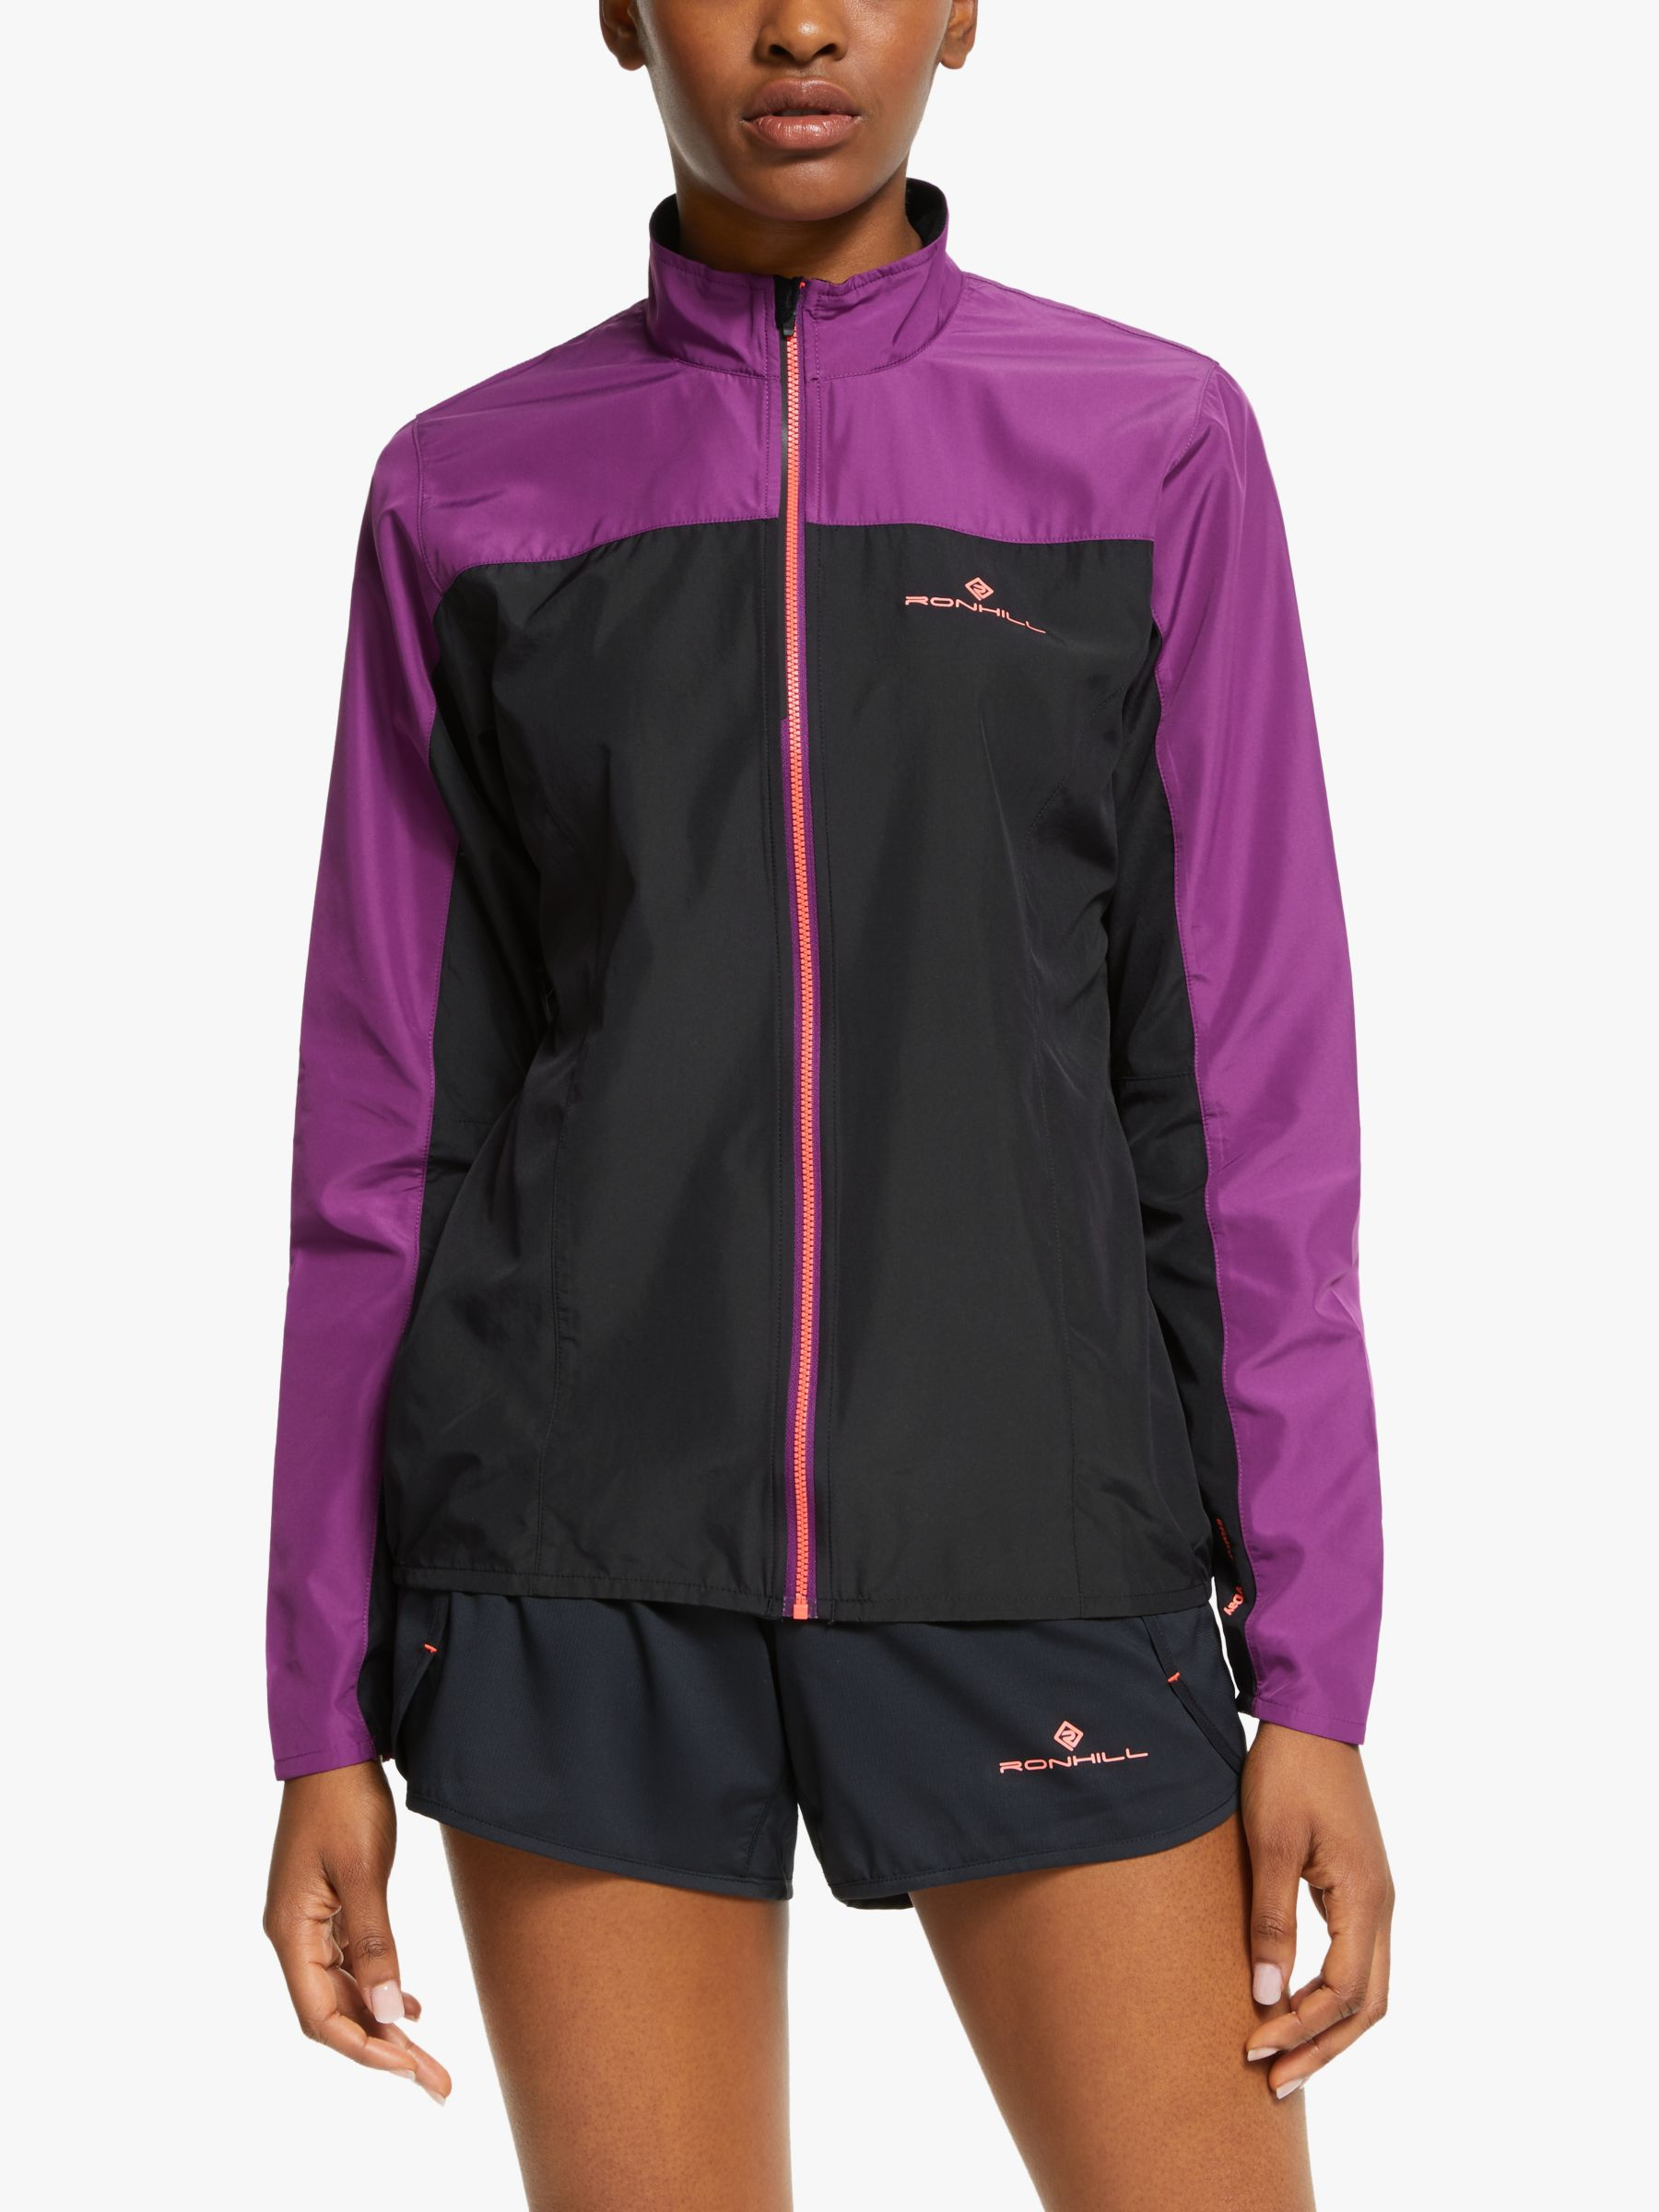 Ronhill Ronhill Stride Windspeed Women's Running Jacket, Black/Grape Juice